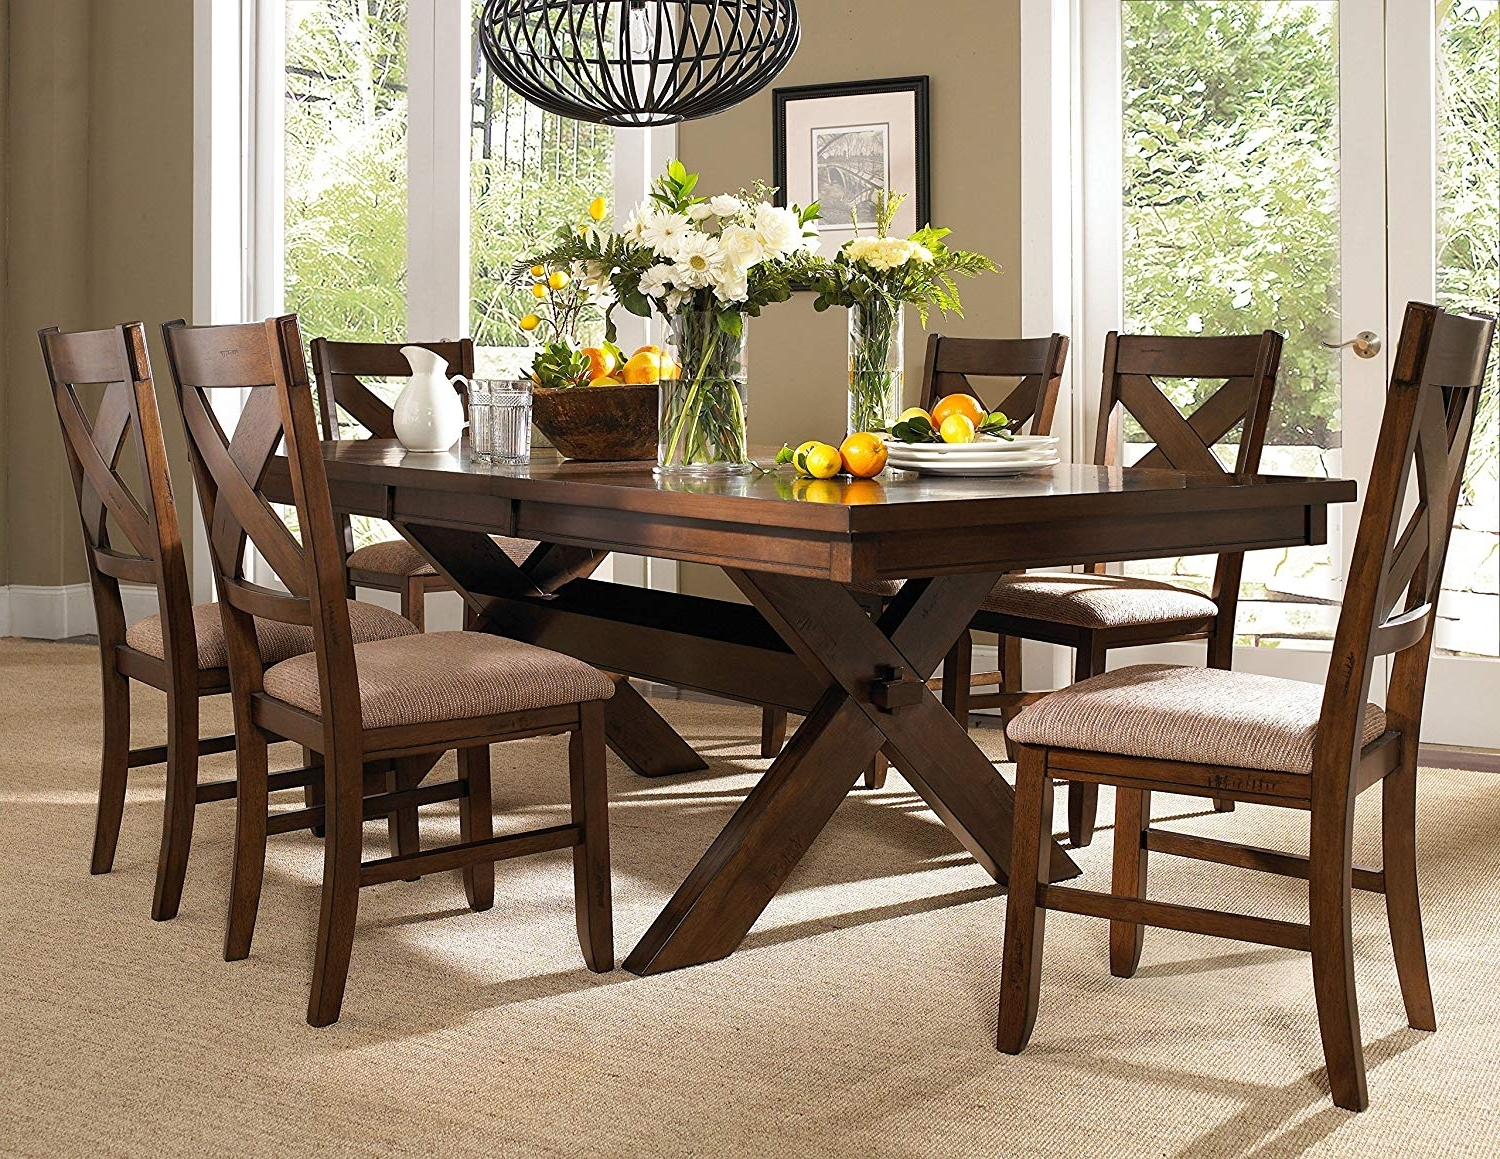 Dining Tables With 6 Chairs Inside Famous Amazon – Powell 713 417M2 7 Piece Wooden Kraven Dining Set (View 7 of 25)